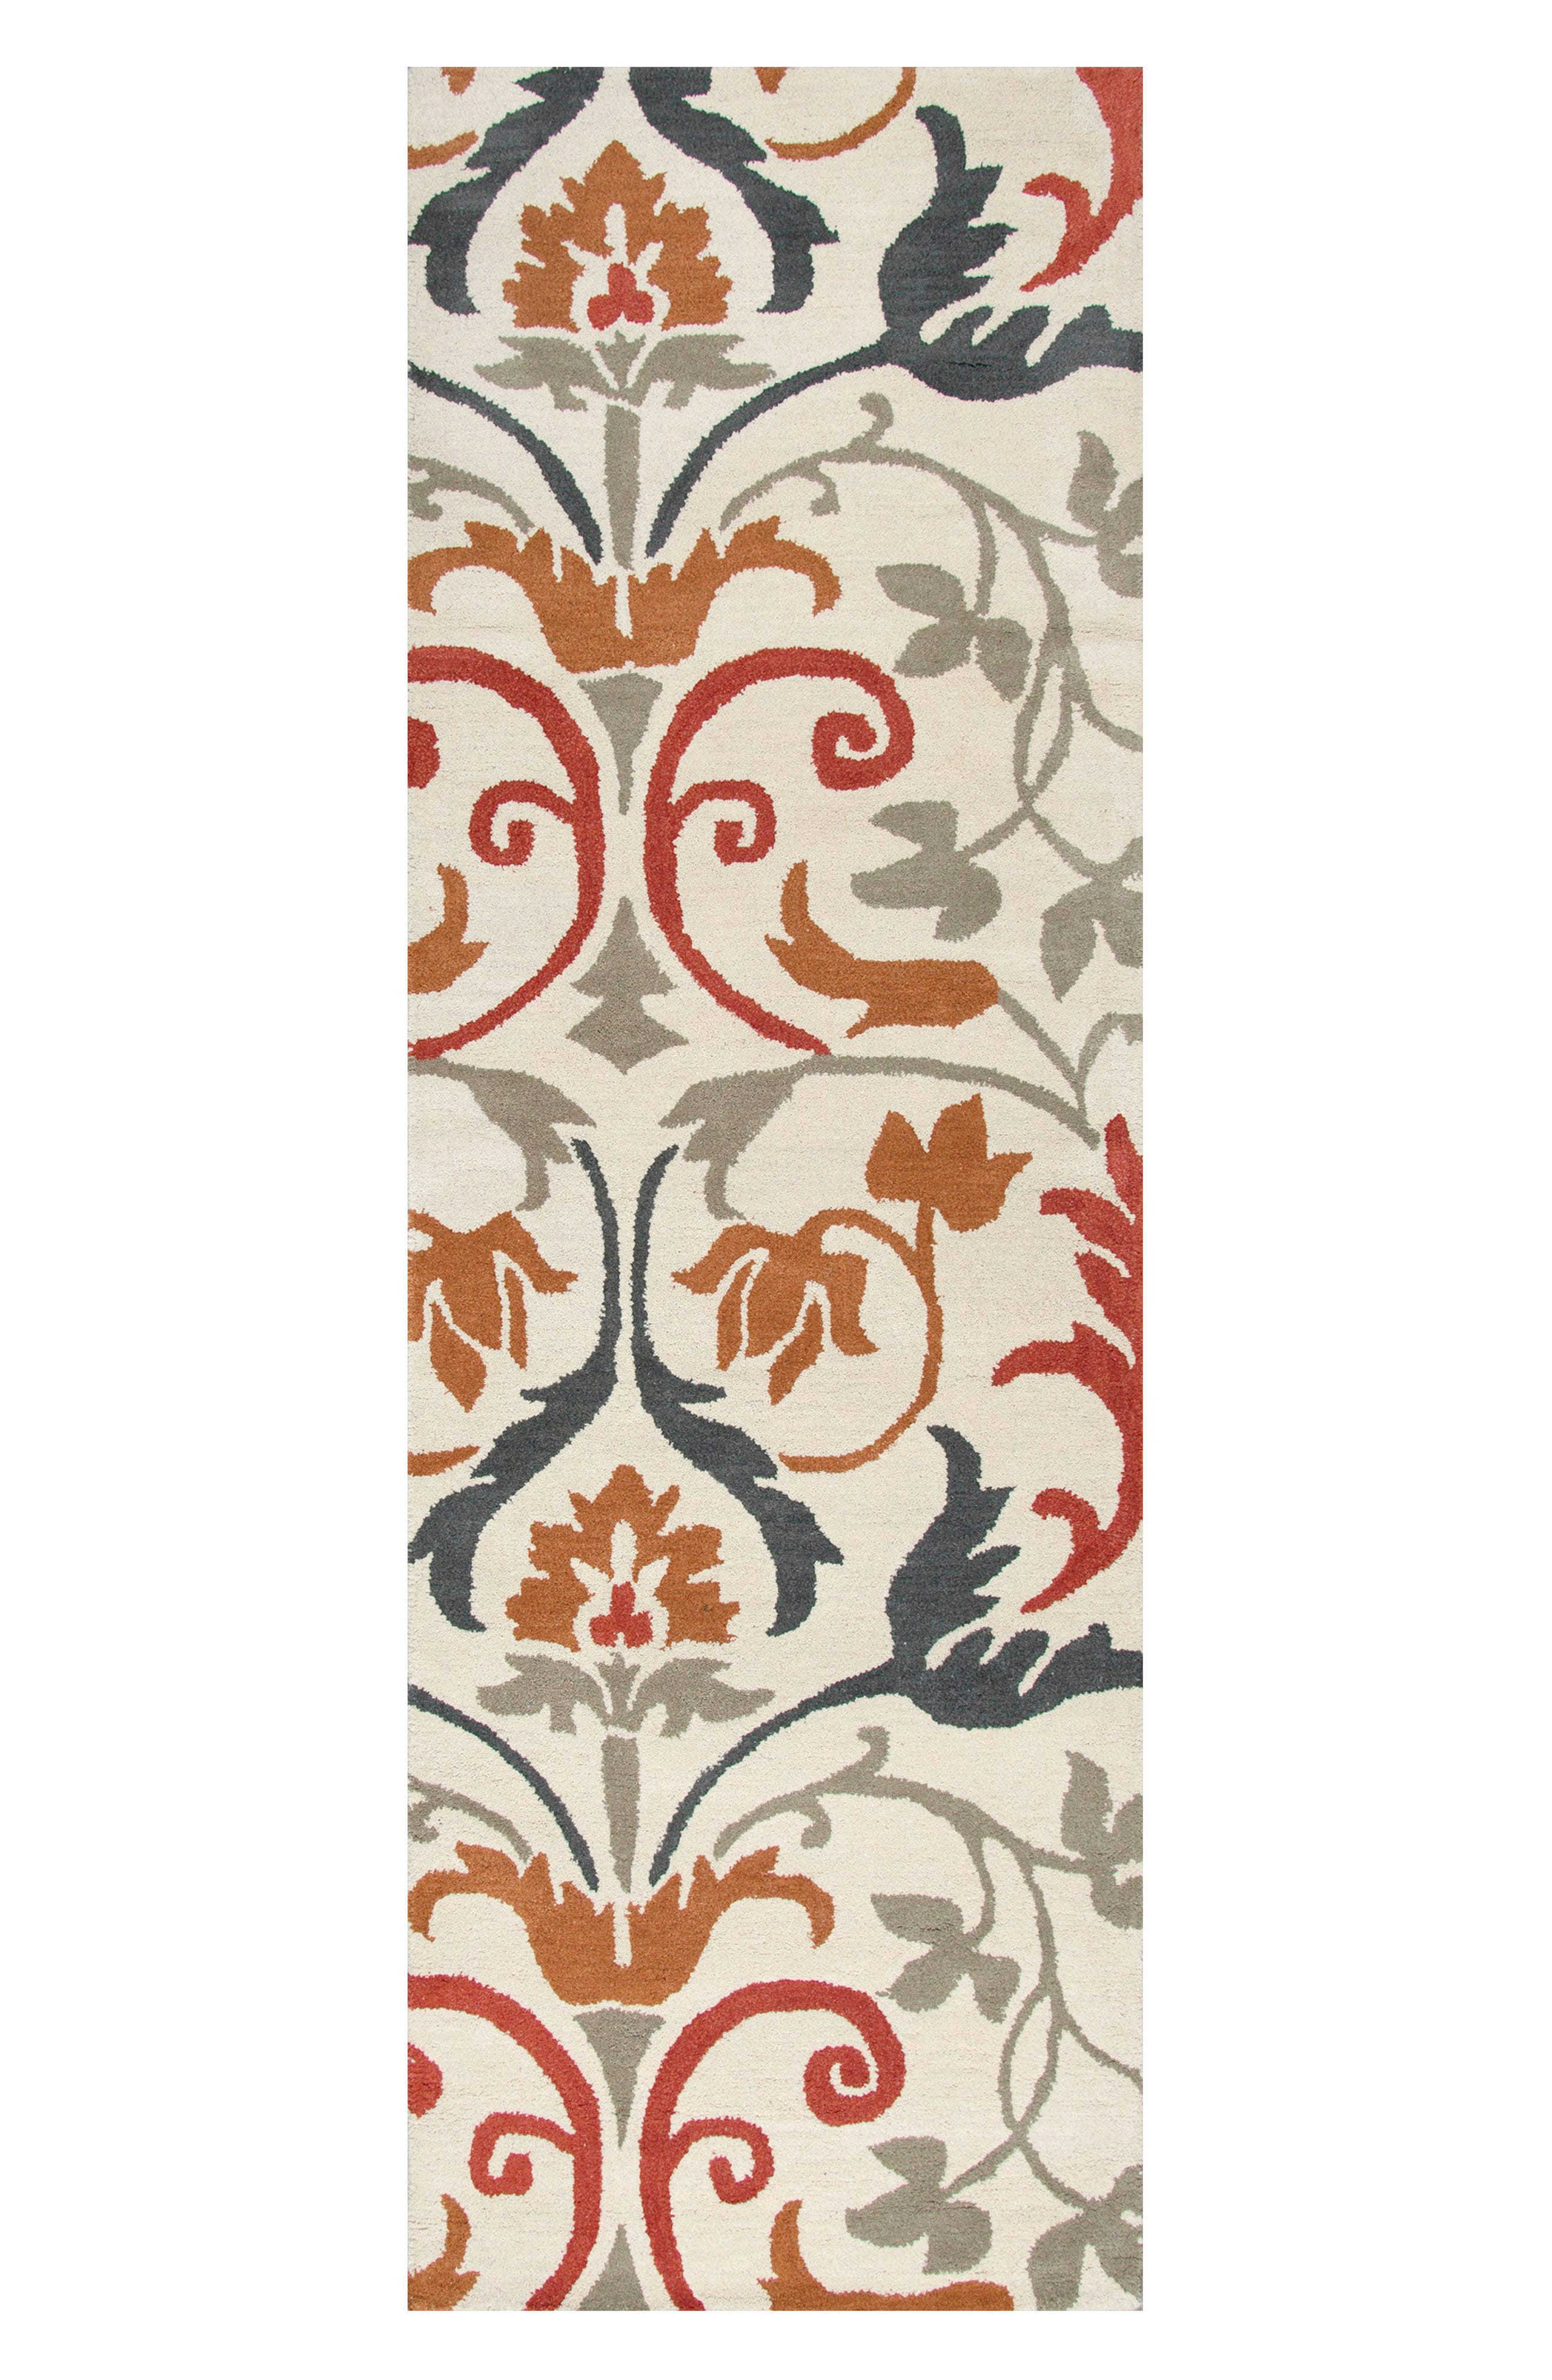 Zoe Hand Tufted Wool Area Rug,                             Alternate thumbnail 3, color,                             900